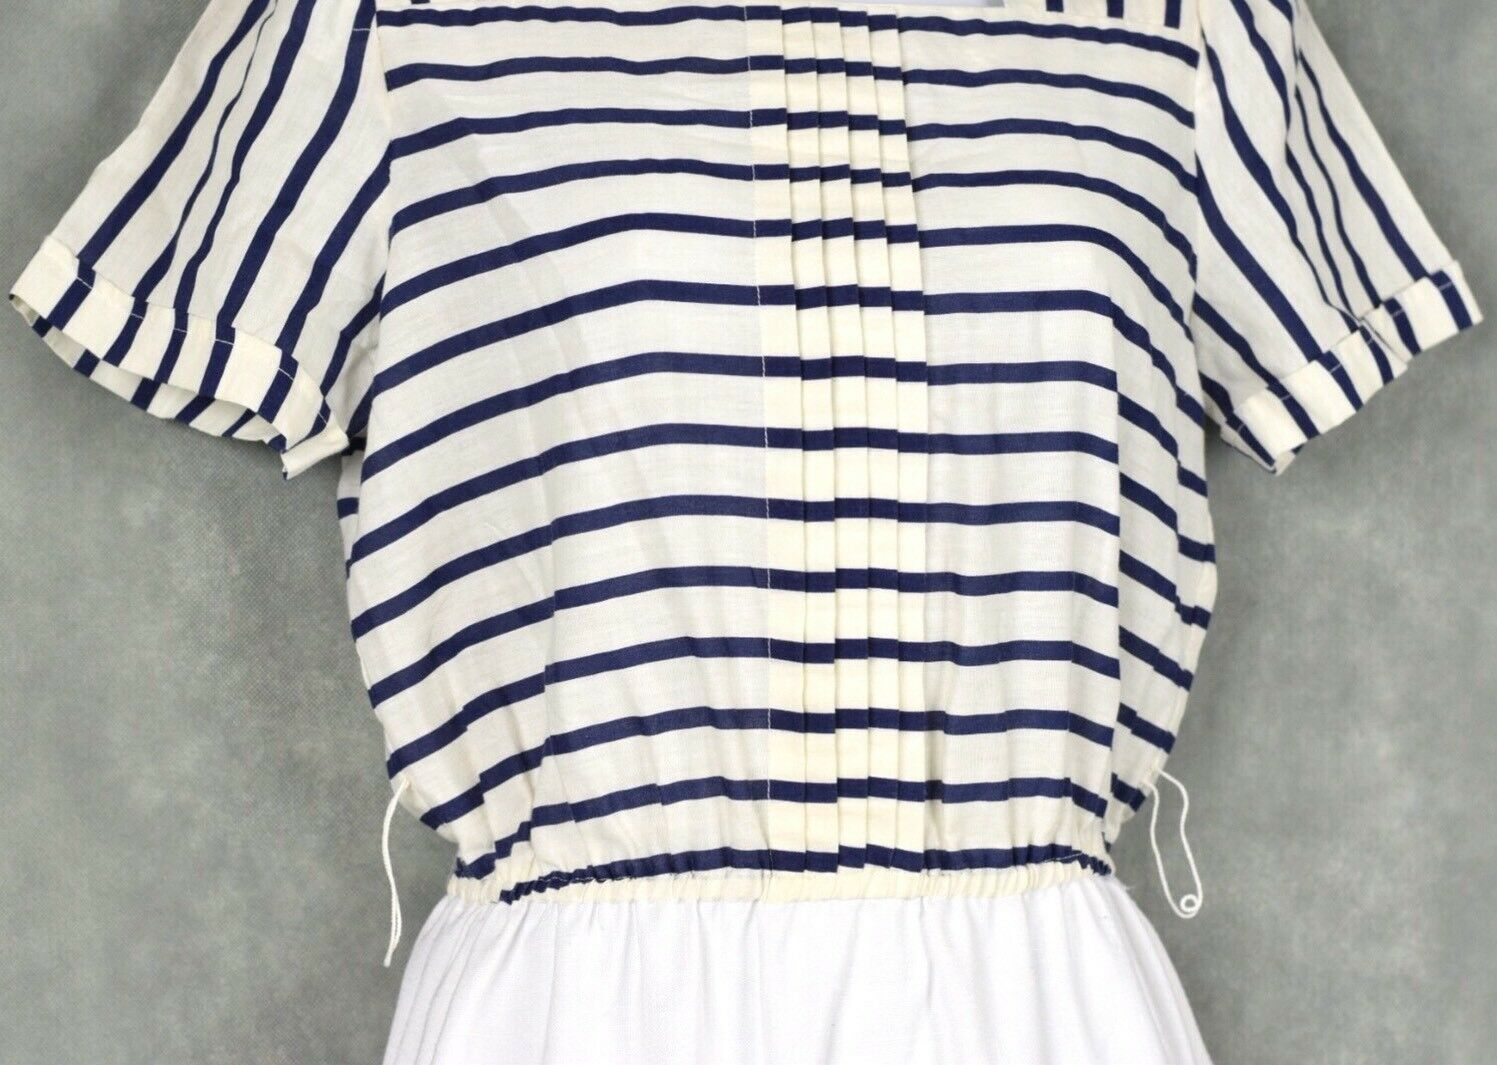 Vintage No Brand White And Blue Dress Lot Size 12 - image 3